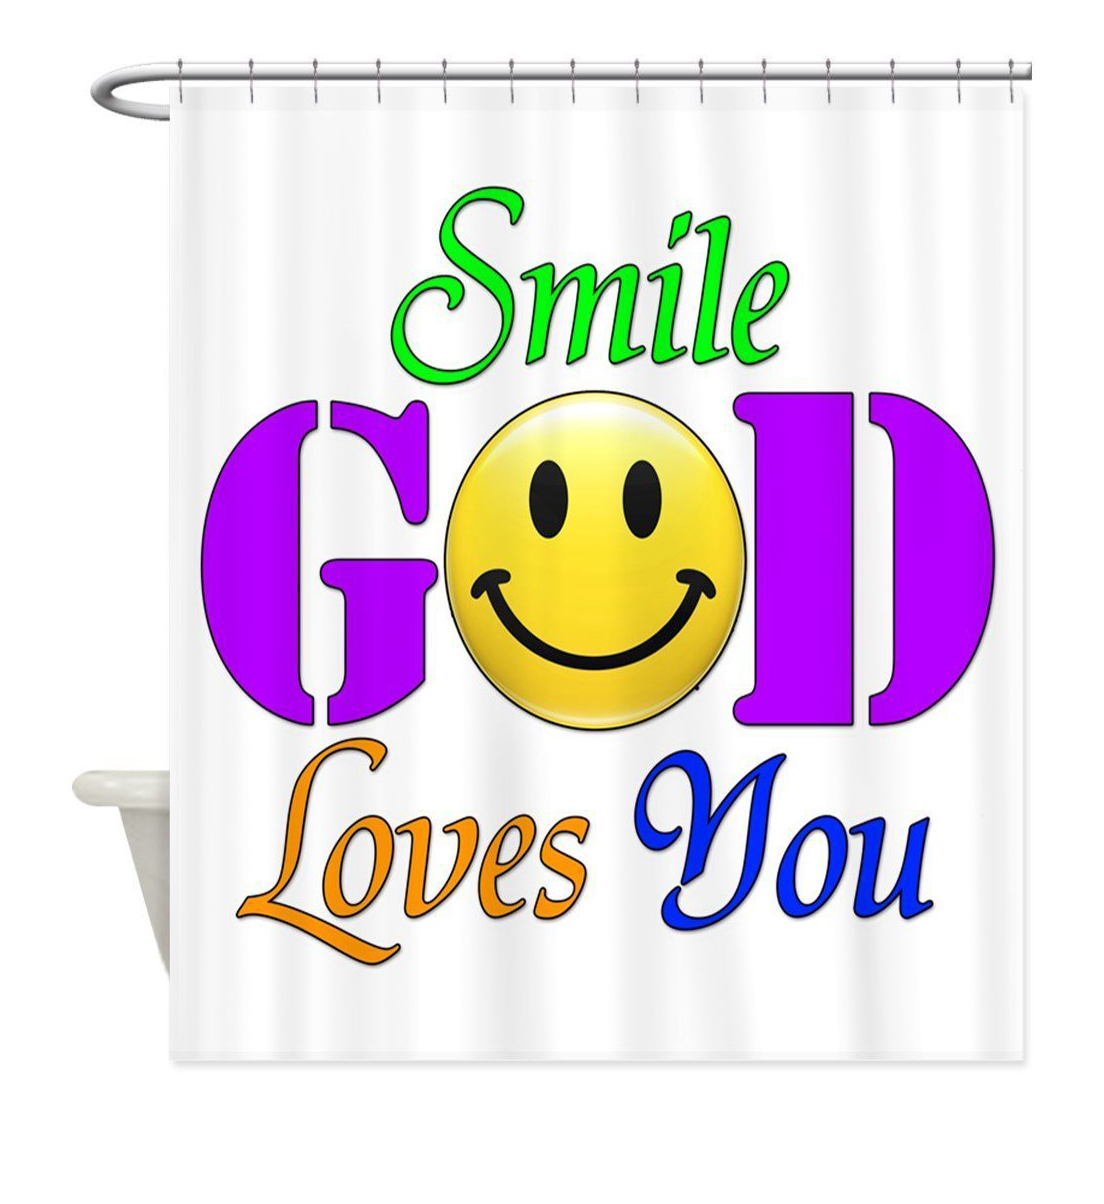 Aliexpress Buy Smile God Loves You I Have Feelings Smile Colorful Bath Bubbles Inspirational Quote Fun Words Lover Decor Art shower curtain from